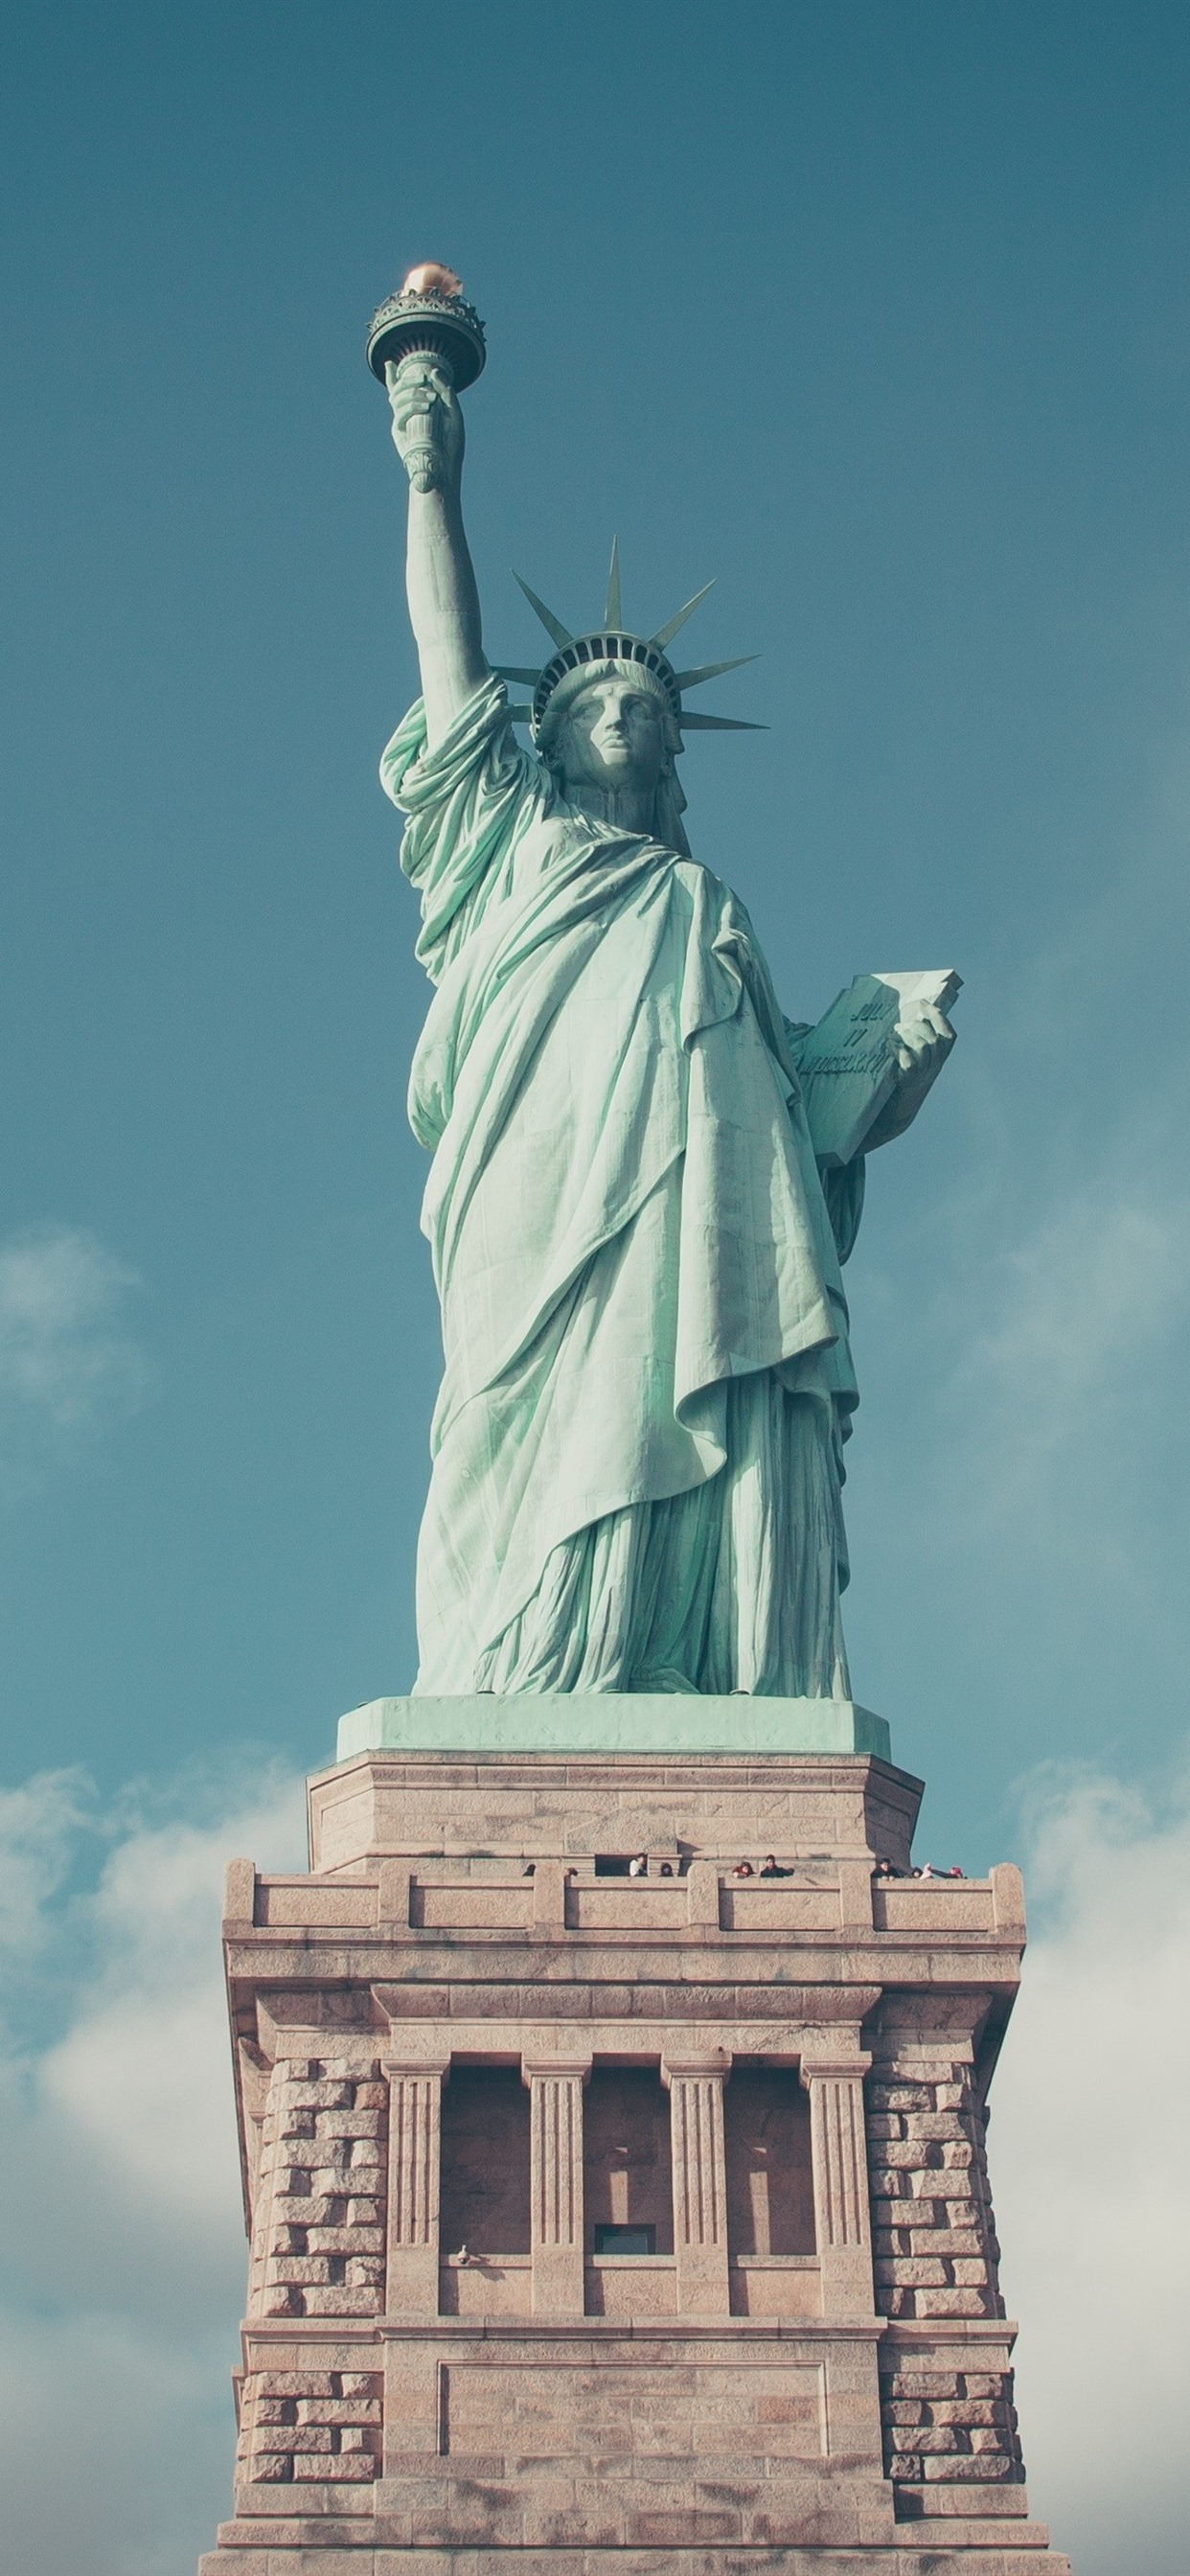 Wallpaper Statue Of Liberty Blue Sky Clouds Usa 3840x2160 Uhd